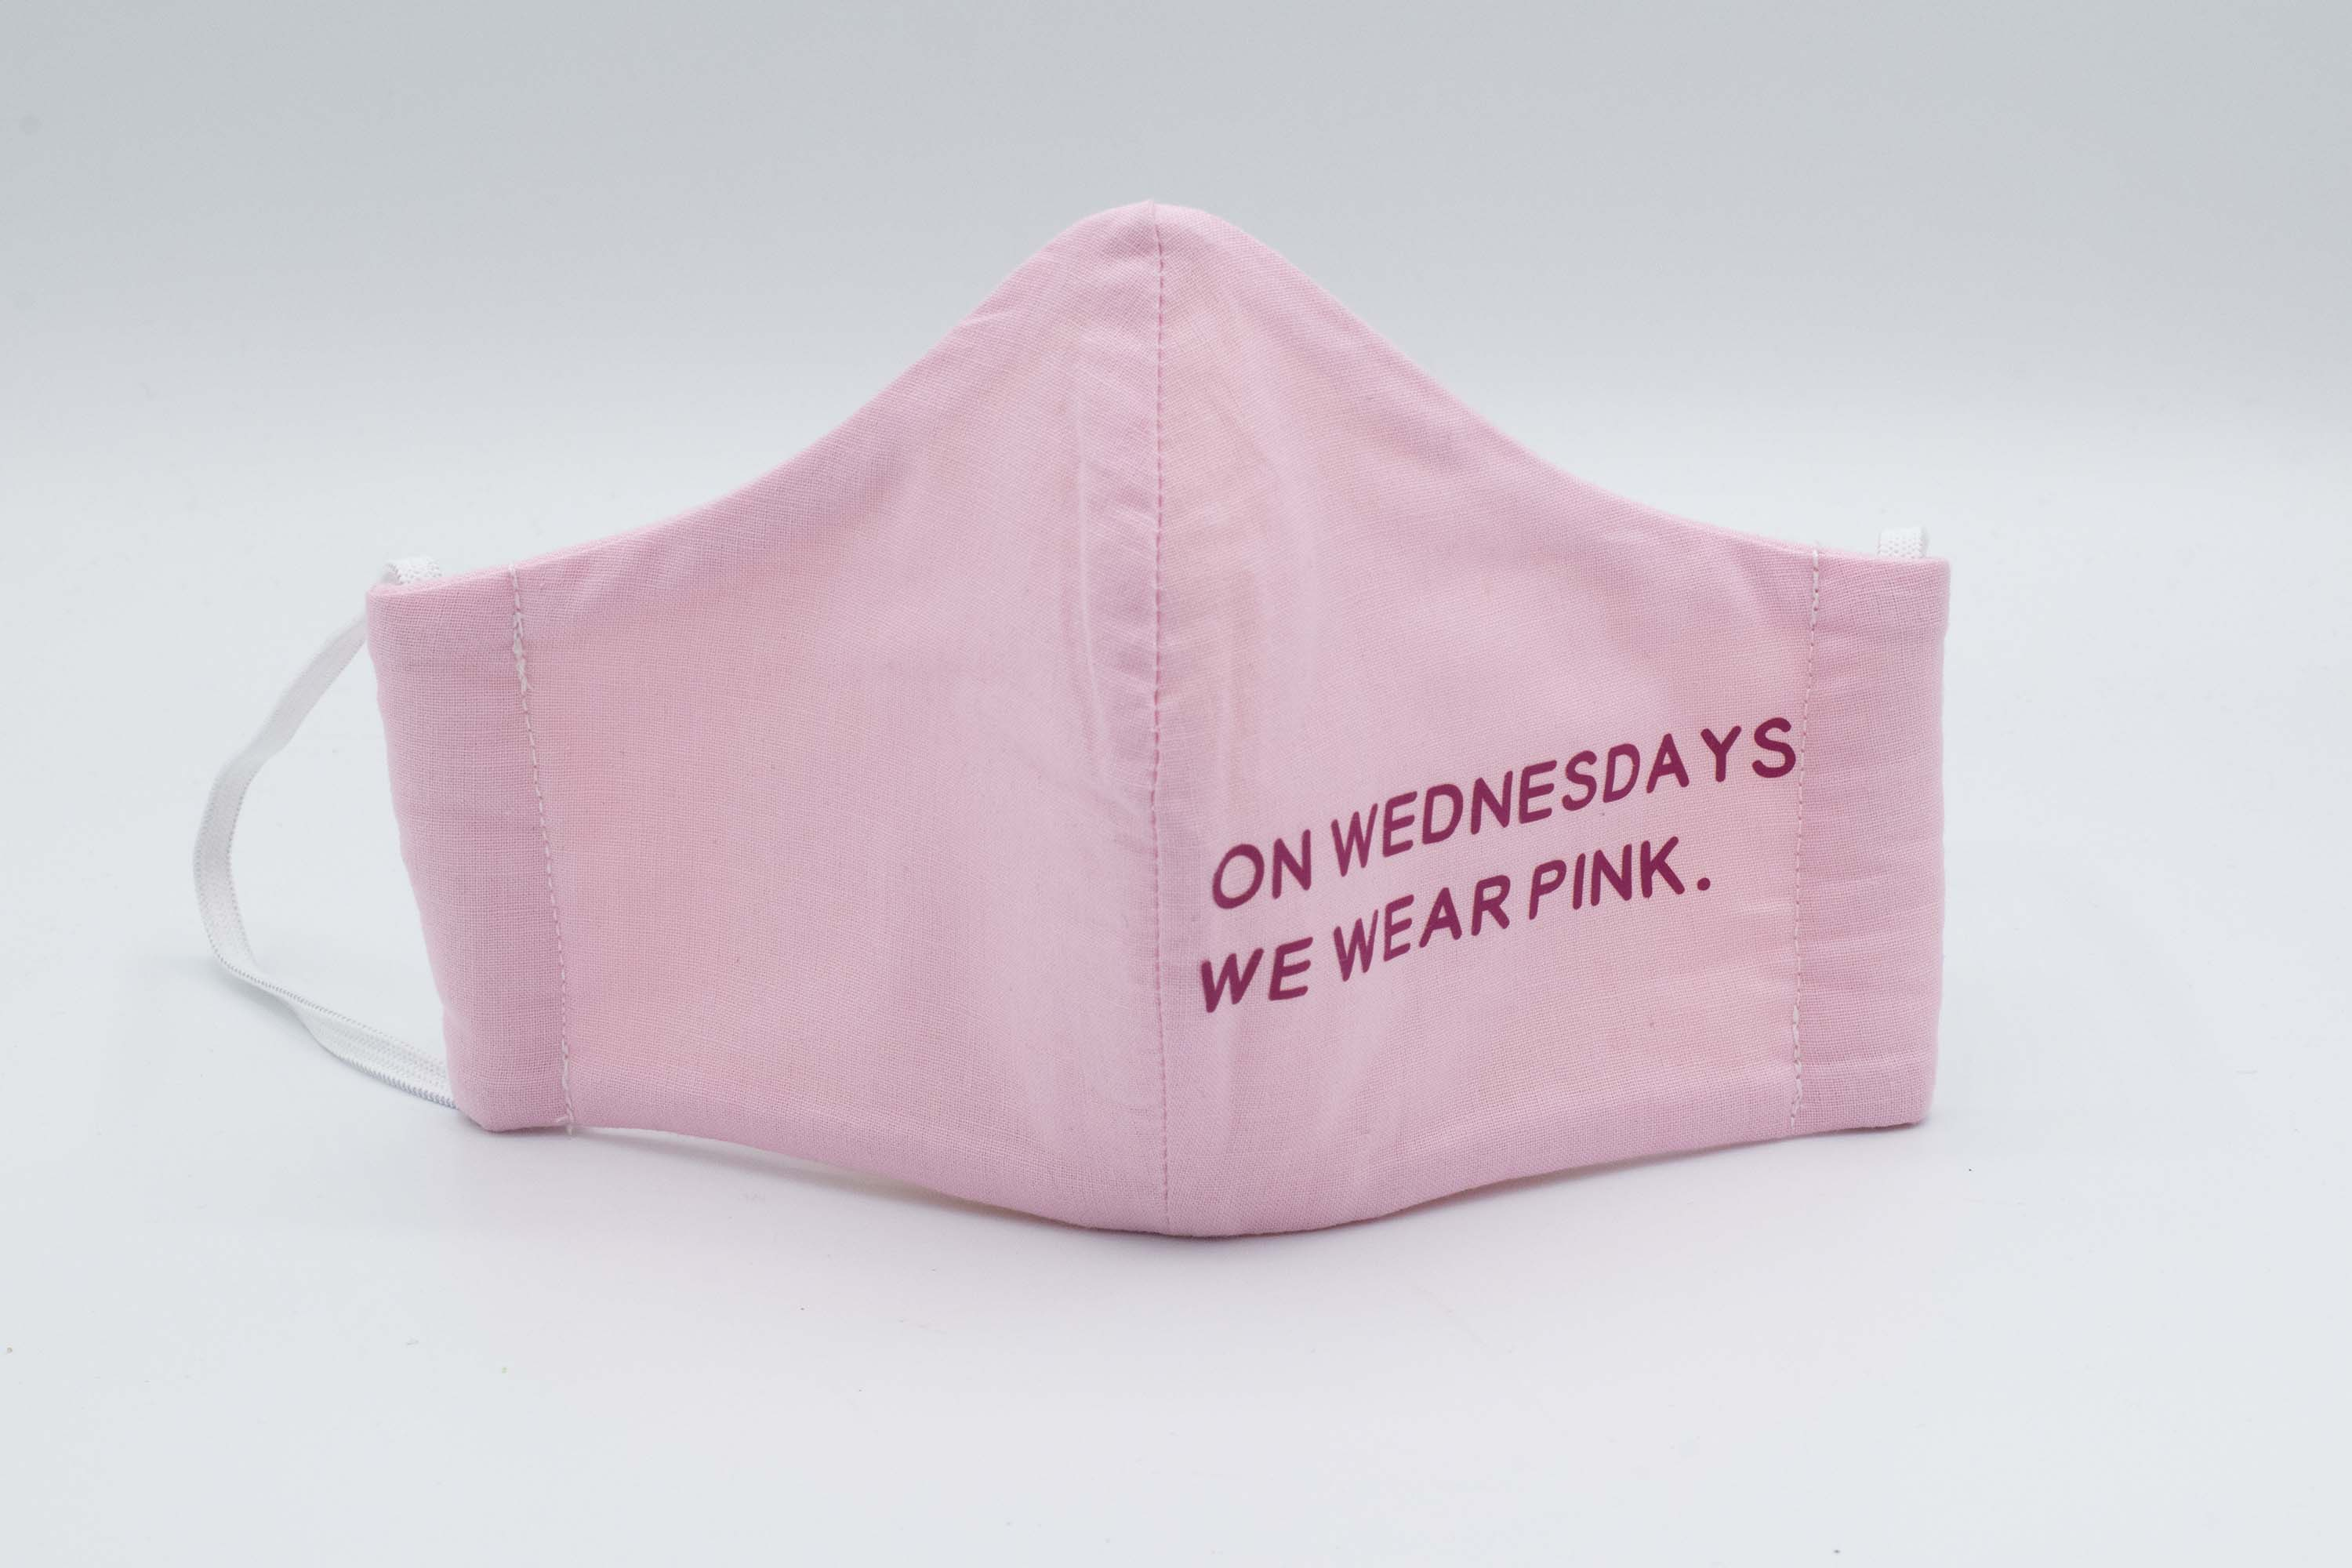 On Wednesday's We Wear Pink Mask